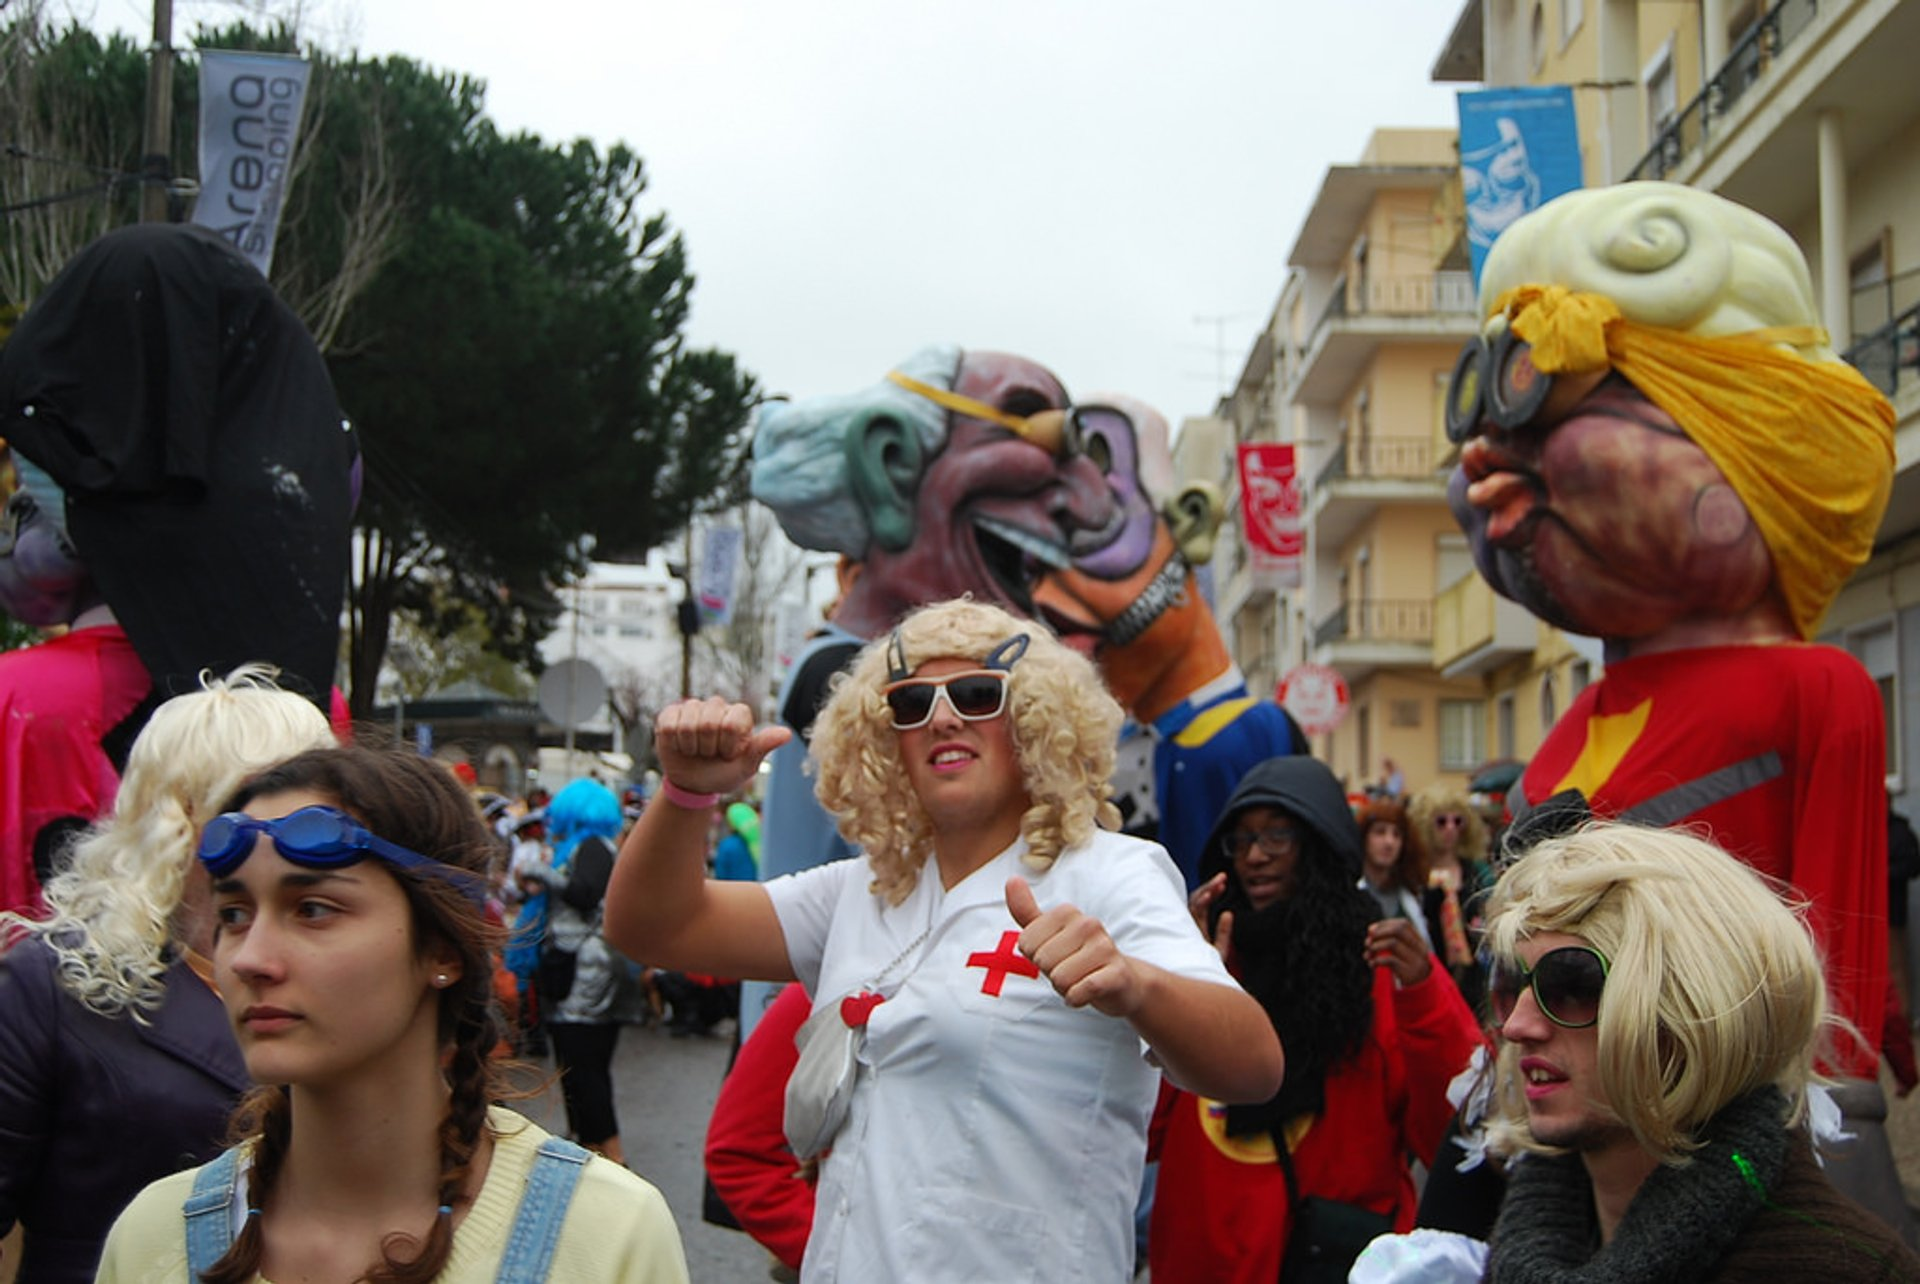 Carnaval de Torres Vedras in Portugal - Best Time